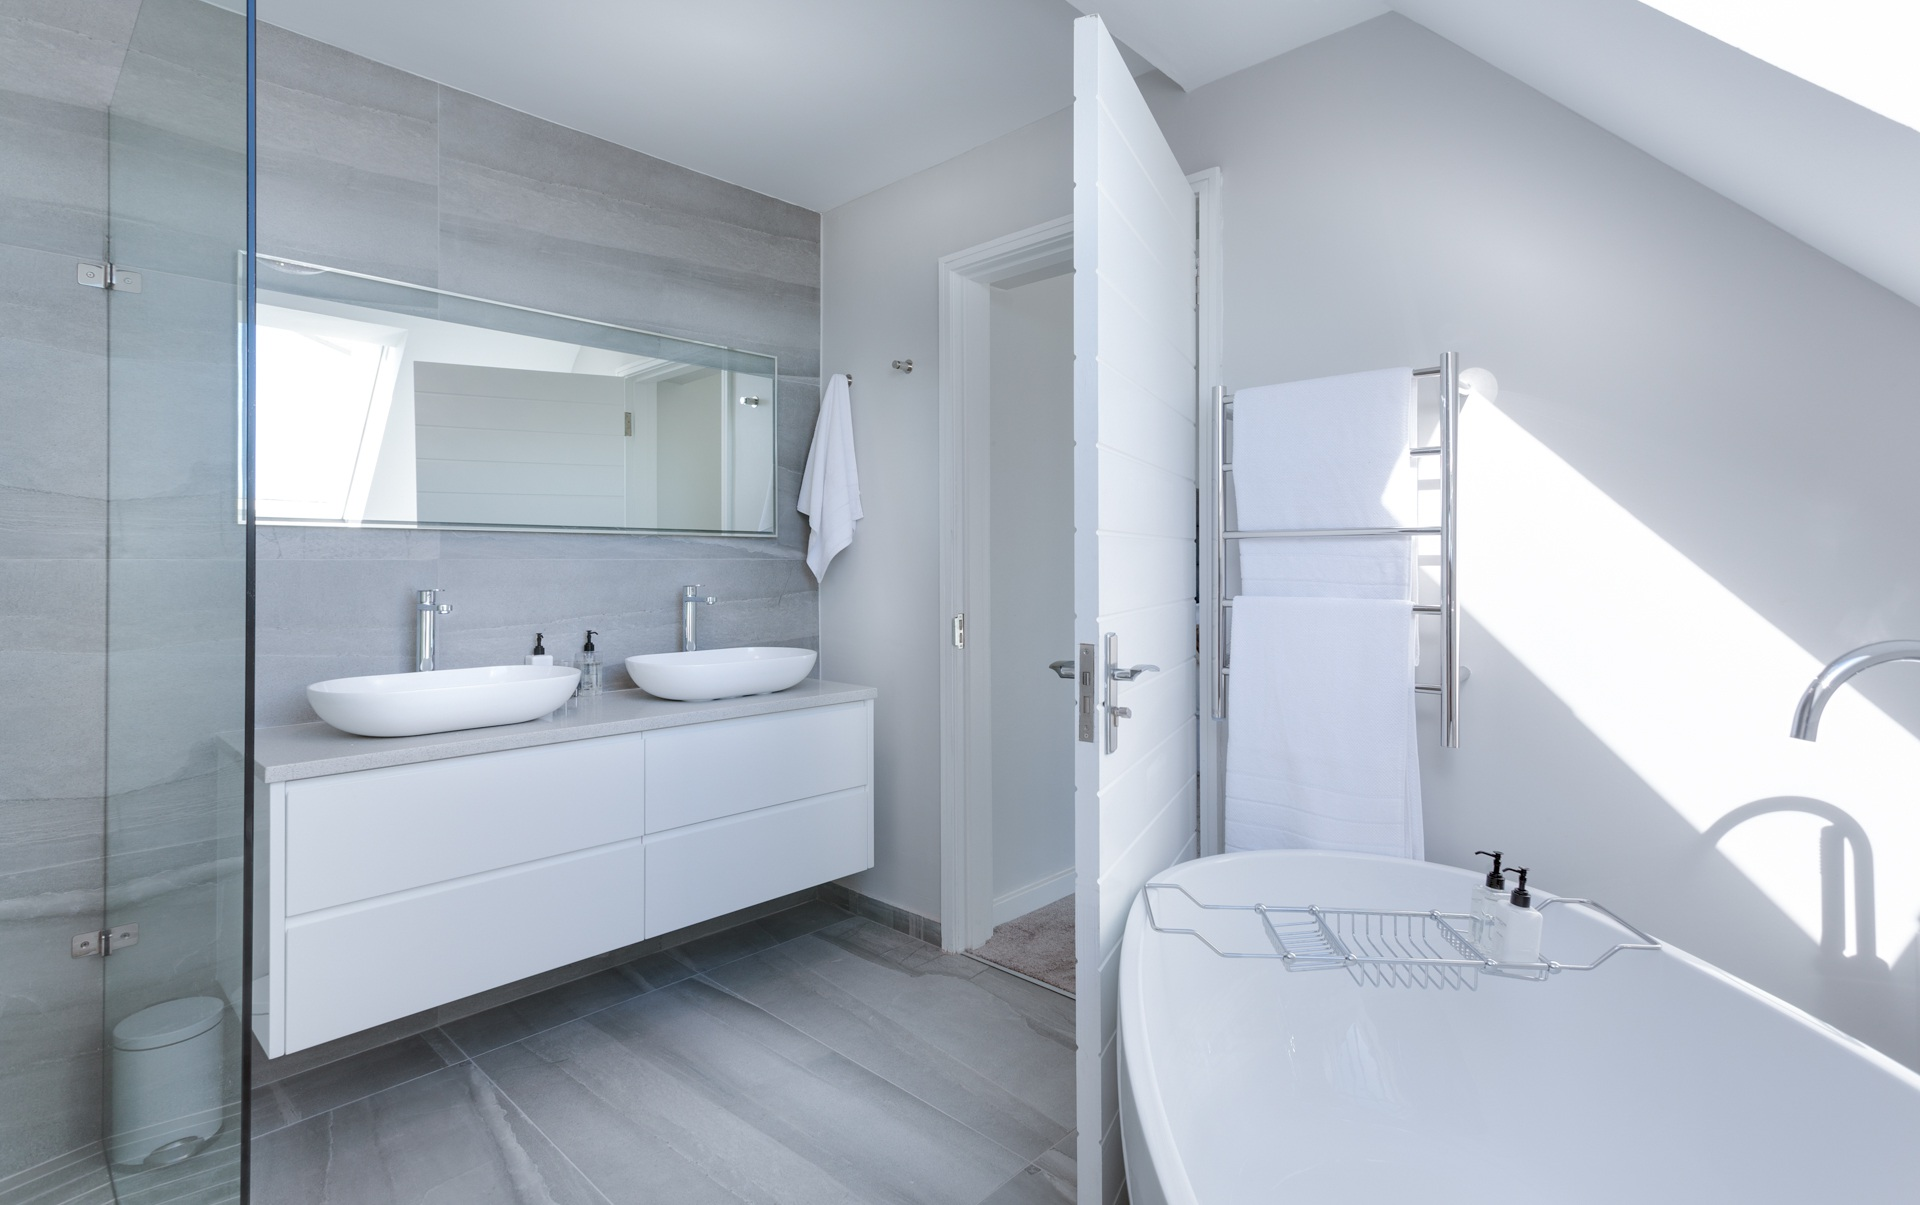 7 Professional Bathroom Cleaning Tips to Keep Your Space Sparkling Clean